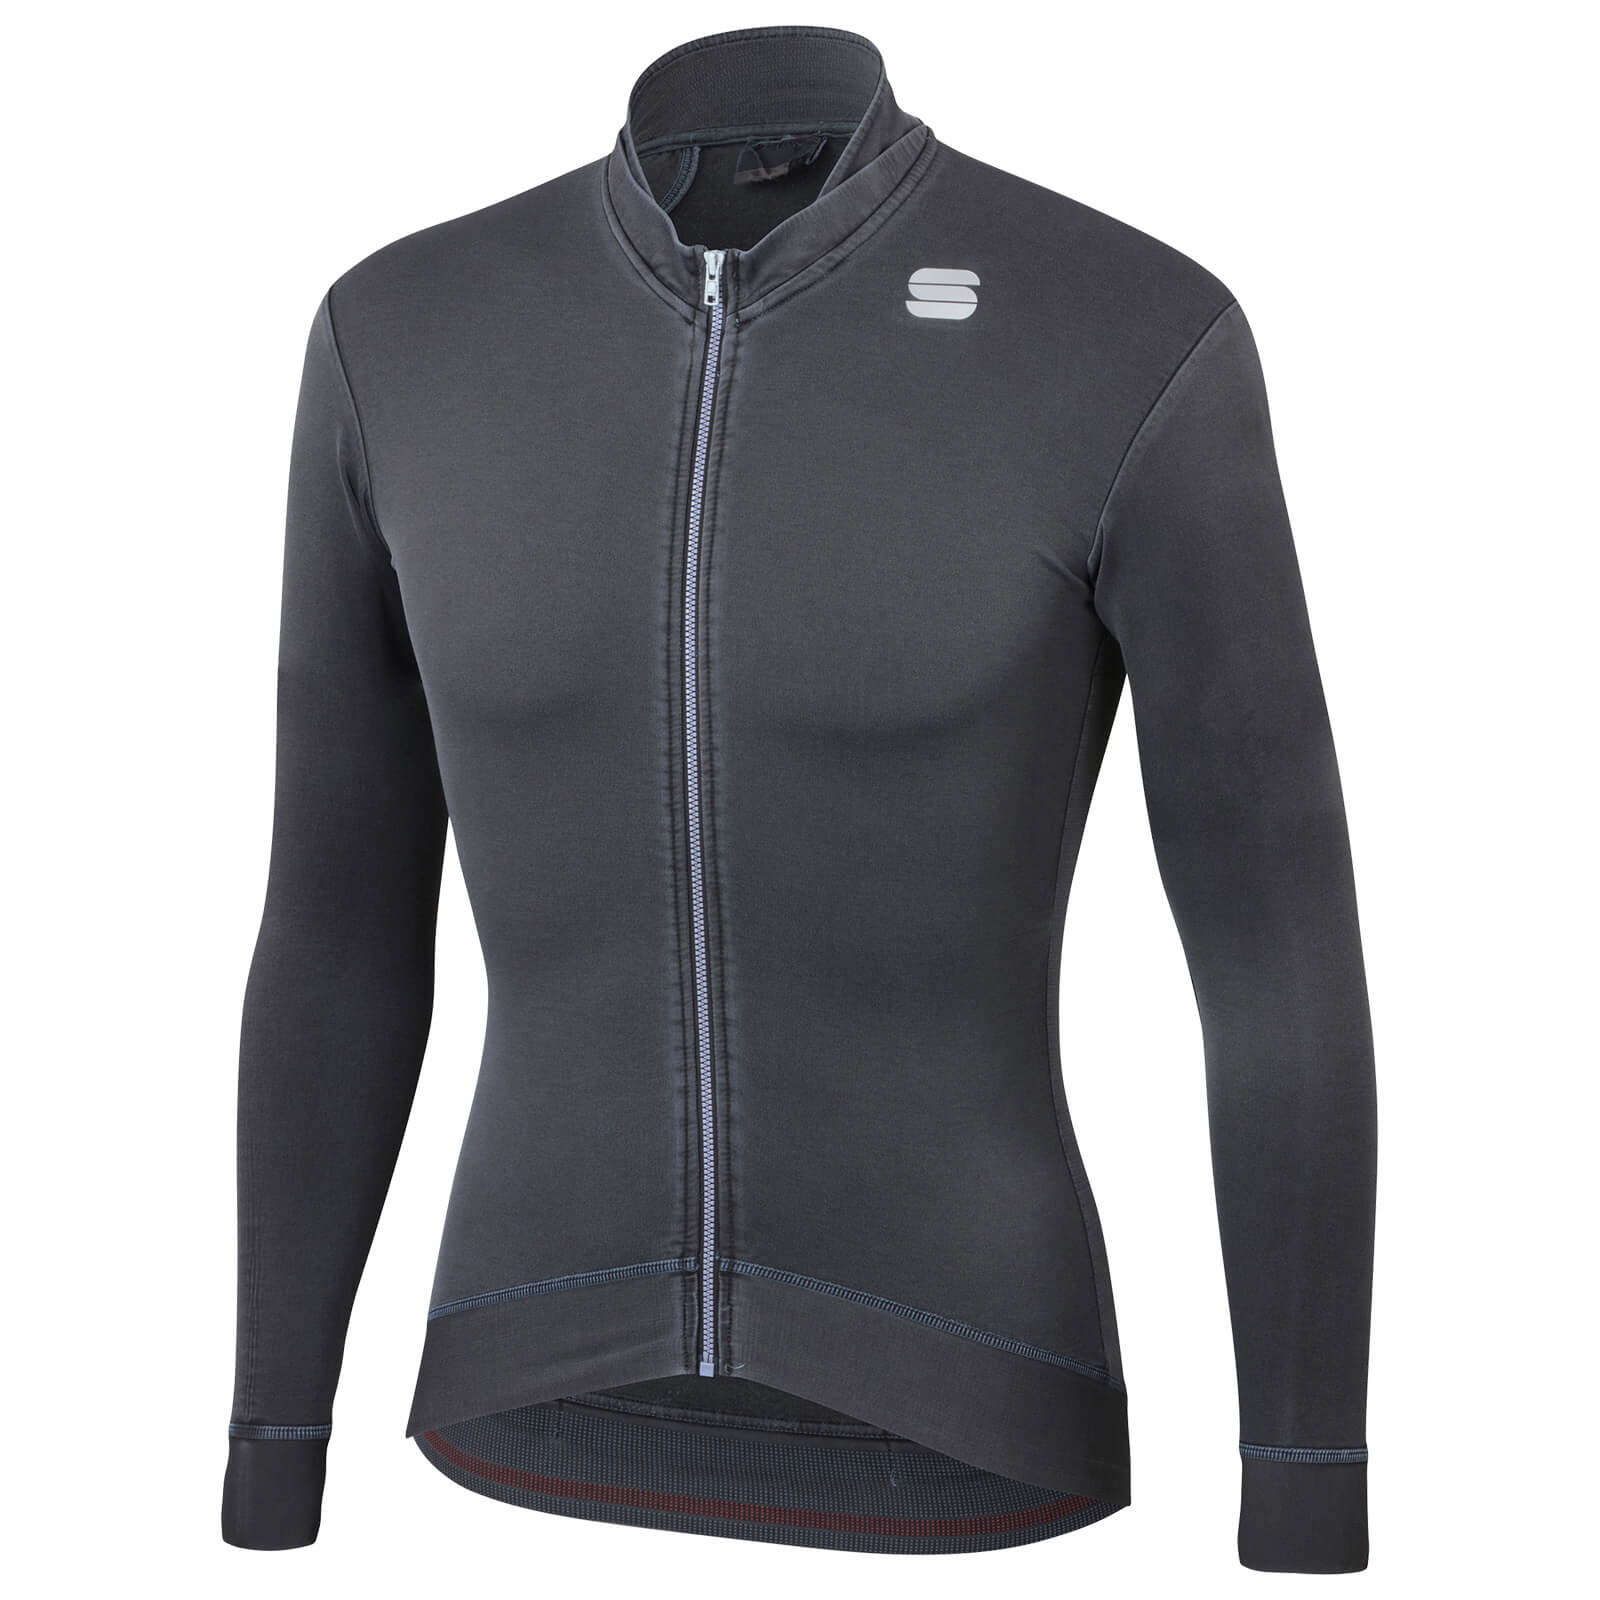 Sportful Monocrom Thermal Jersey - XL - Anthracite